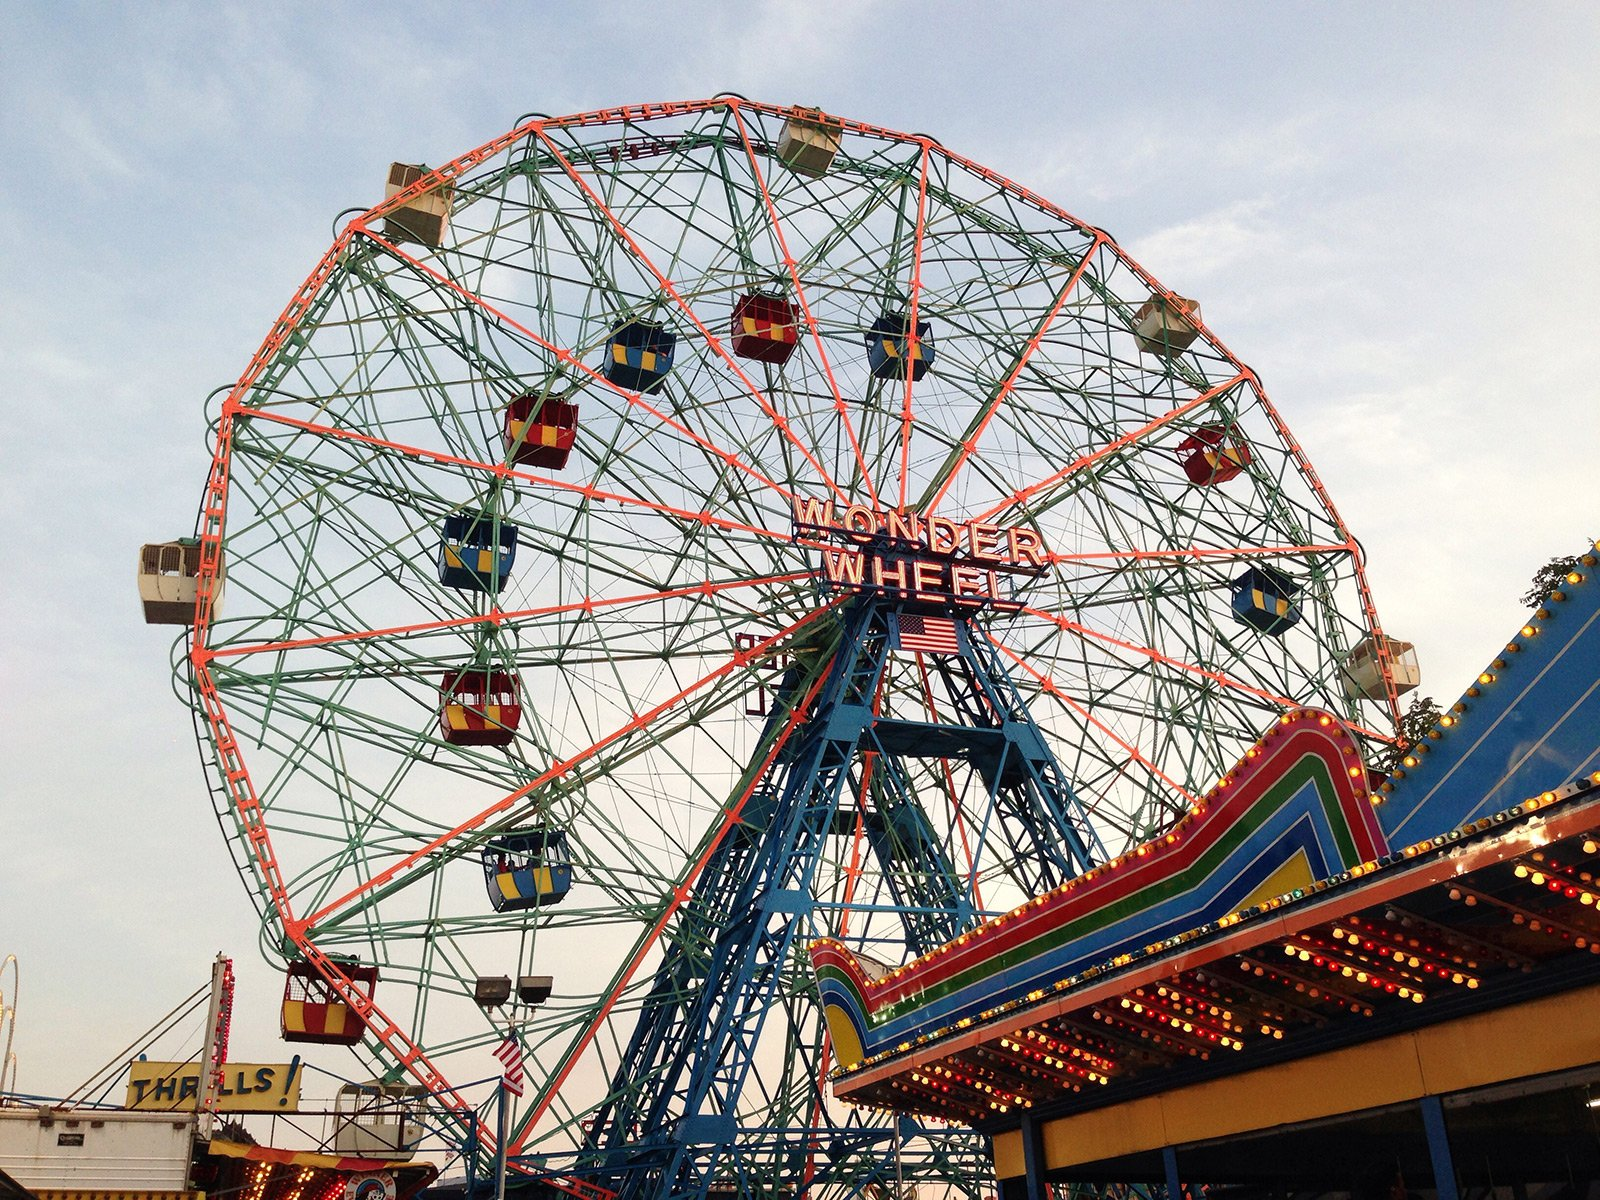 How to ride the Wonder Wheel in New York